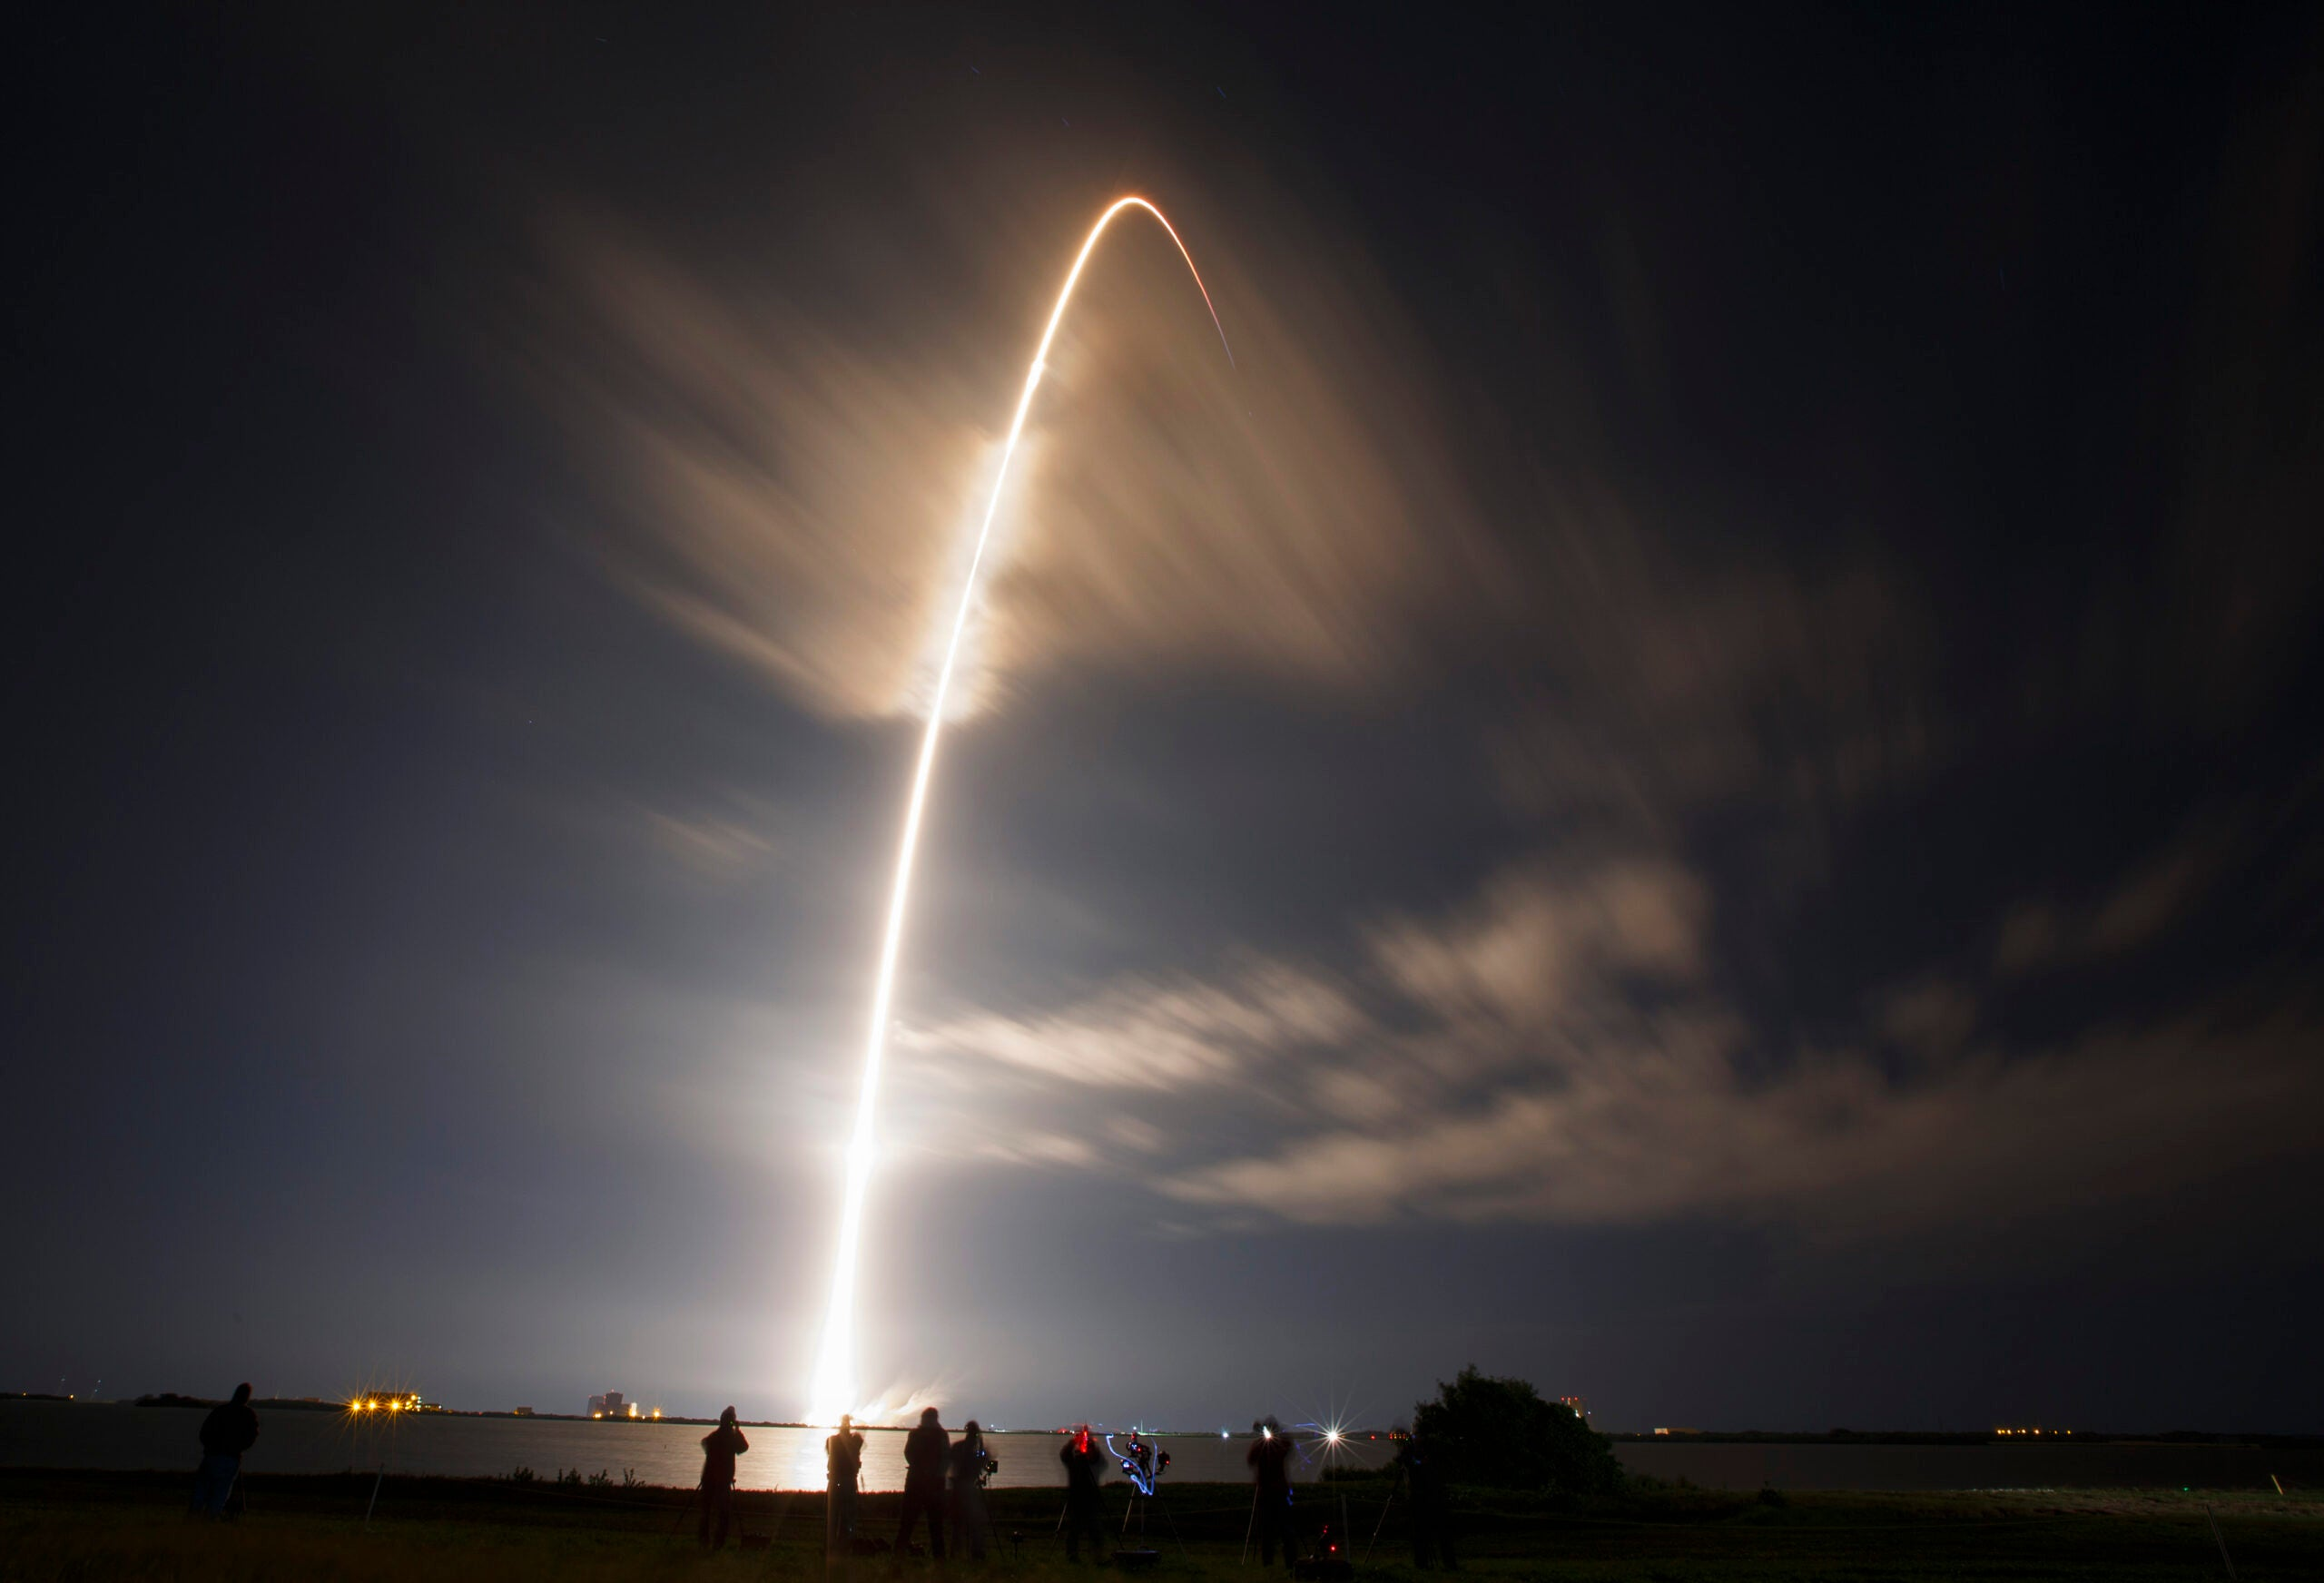 Elon Musk Wants To Build And Launch Satellites To Fund A Mars Colony